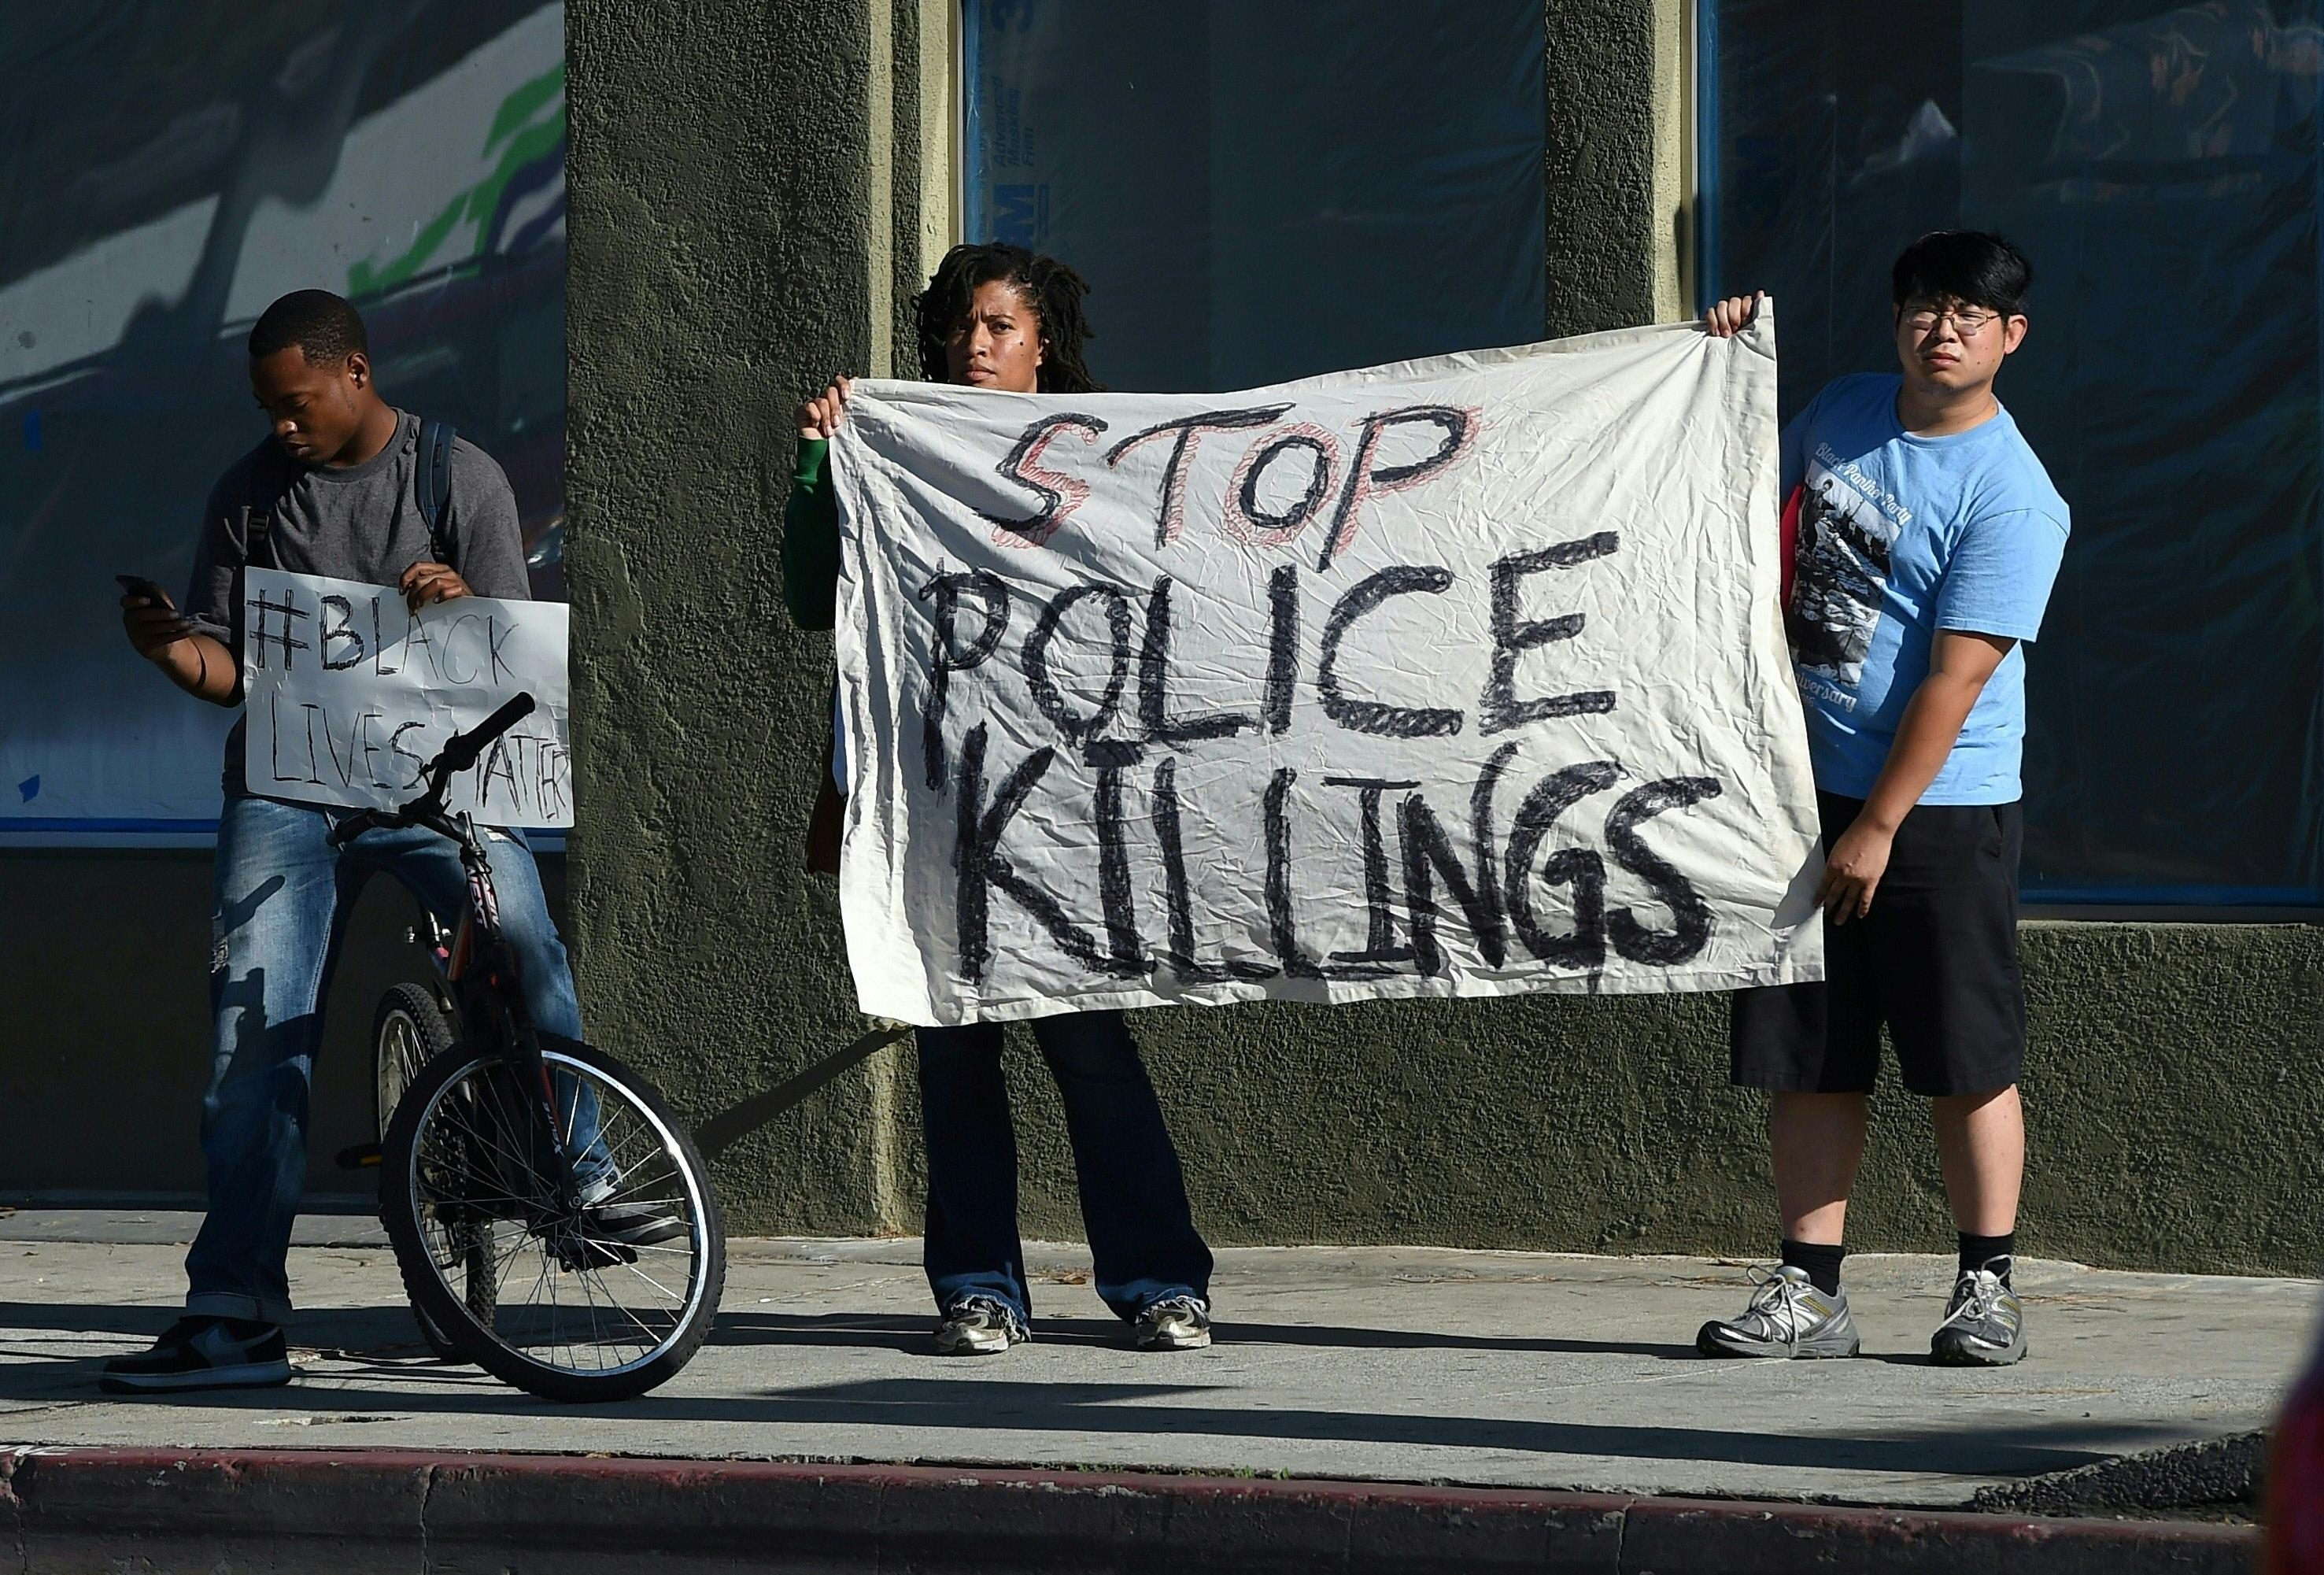 Why police violence needs to be treated as a public health issue